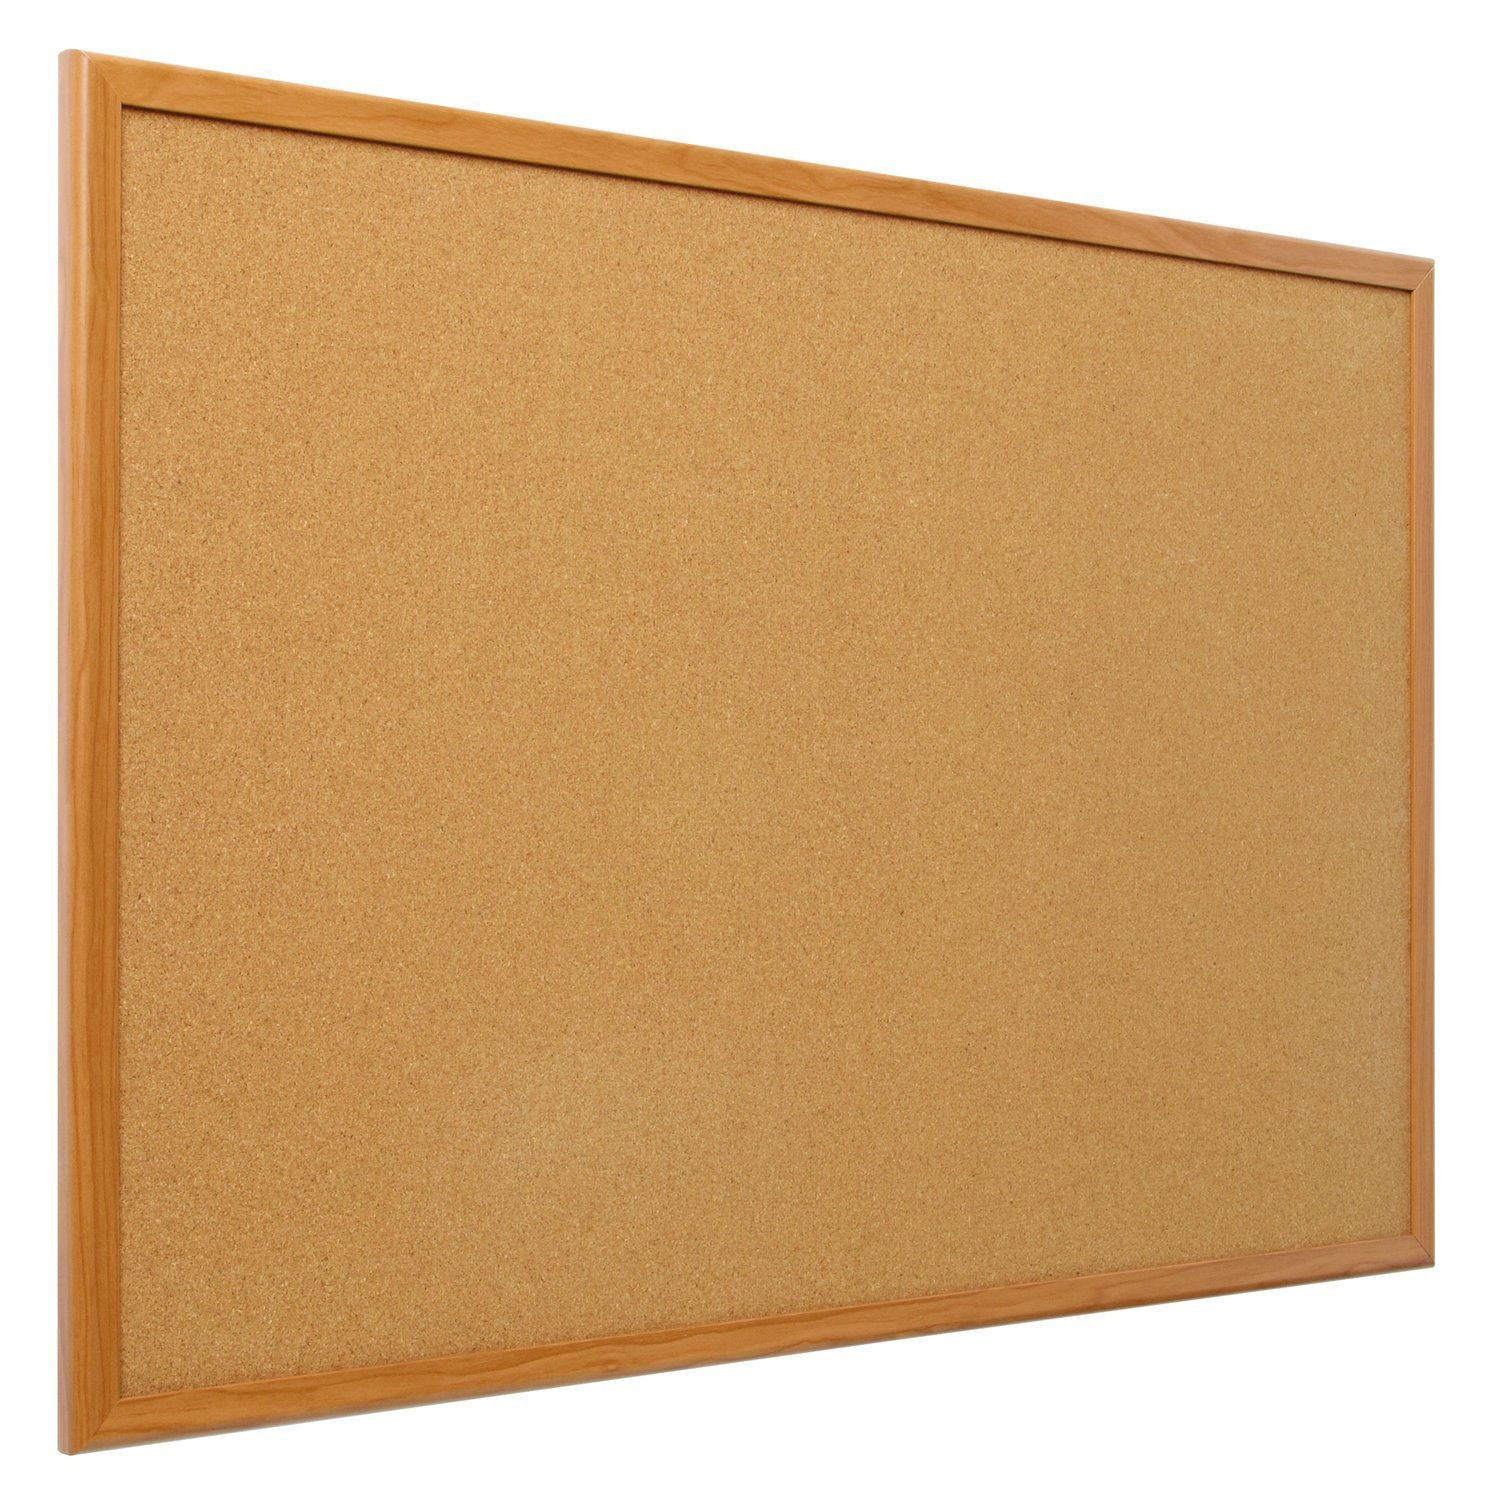 Amazon.com : Quartet Bulletin Board, Cork Board, 2u0027 X 3u0027, Oak Wood Finish  Frame (MWDB2436 ECR) : Office Products